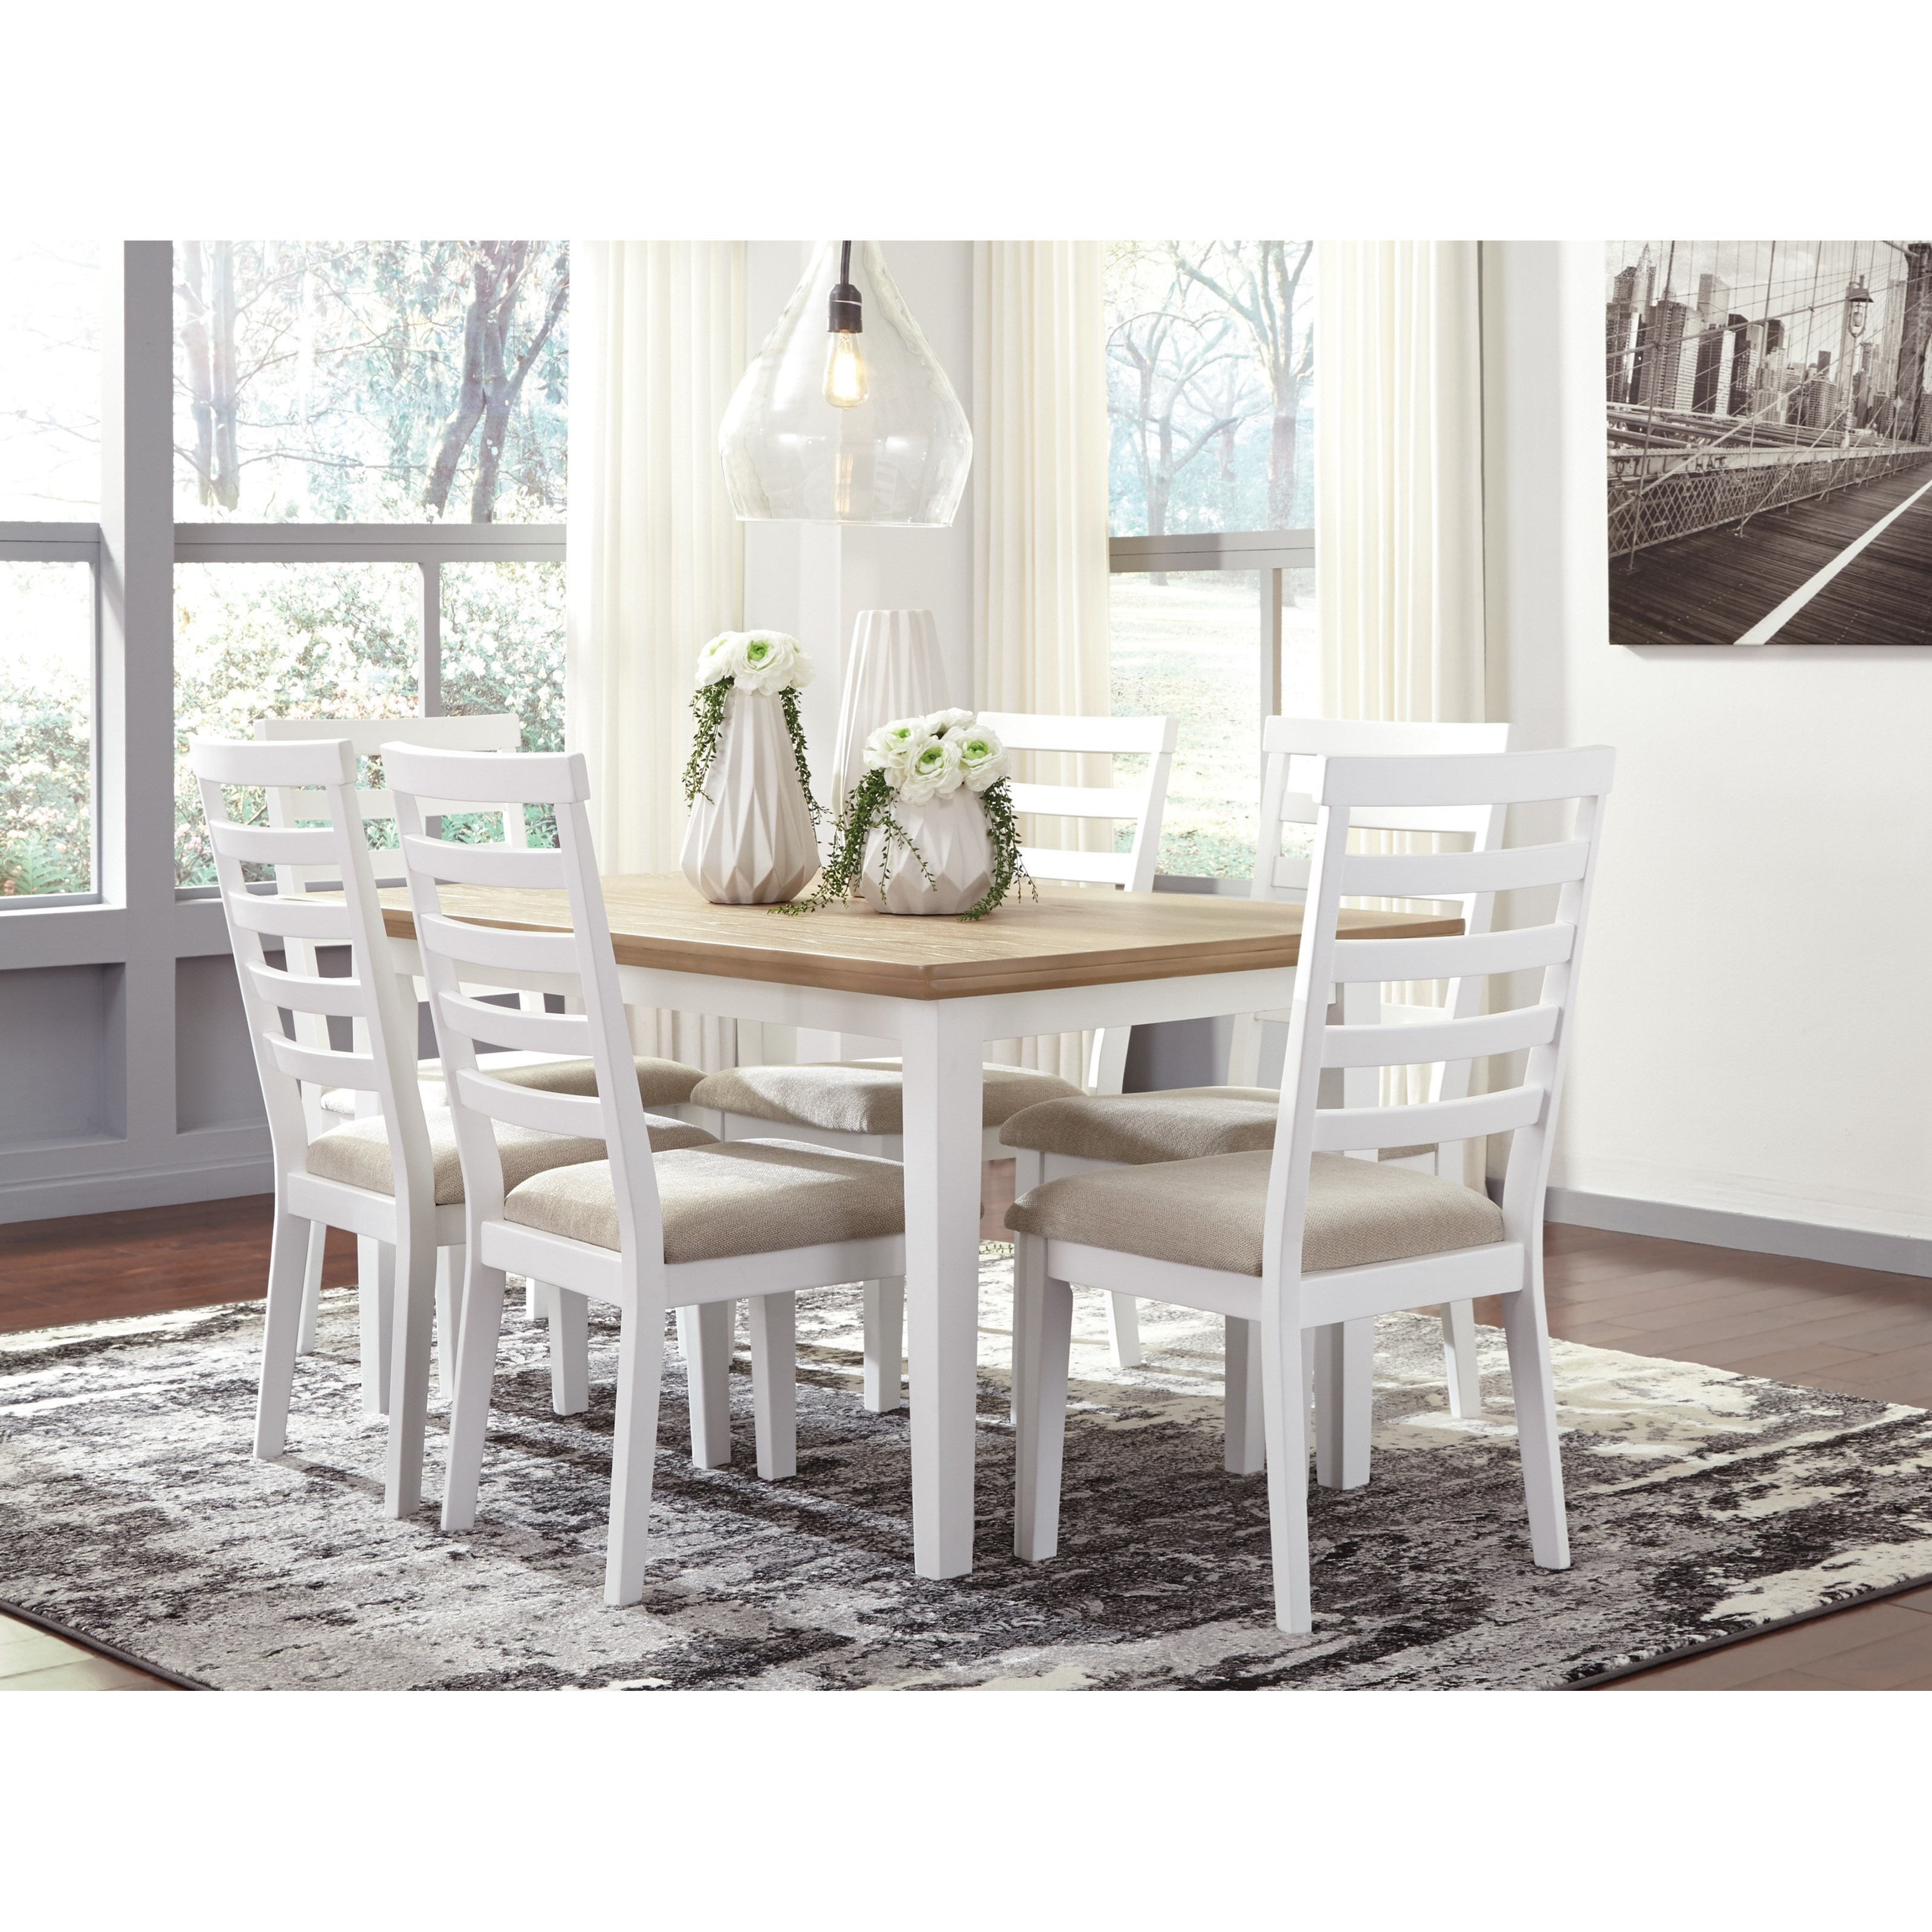 ... Signature Design by Ashley Gardomi7-Piece Rectangular Dining Room Table Set ...  sc 1 st  Royal Furniture & Signature Design by Ashley Gardomi Two-Tone 7-Piece Rectangular ...